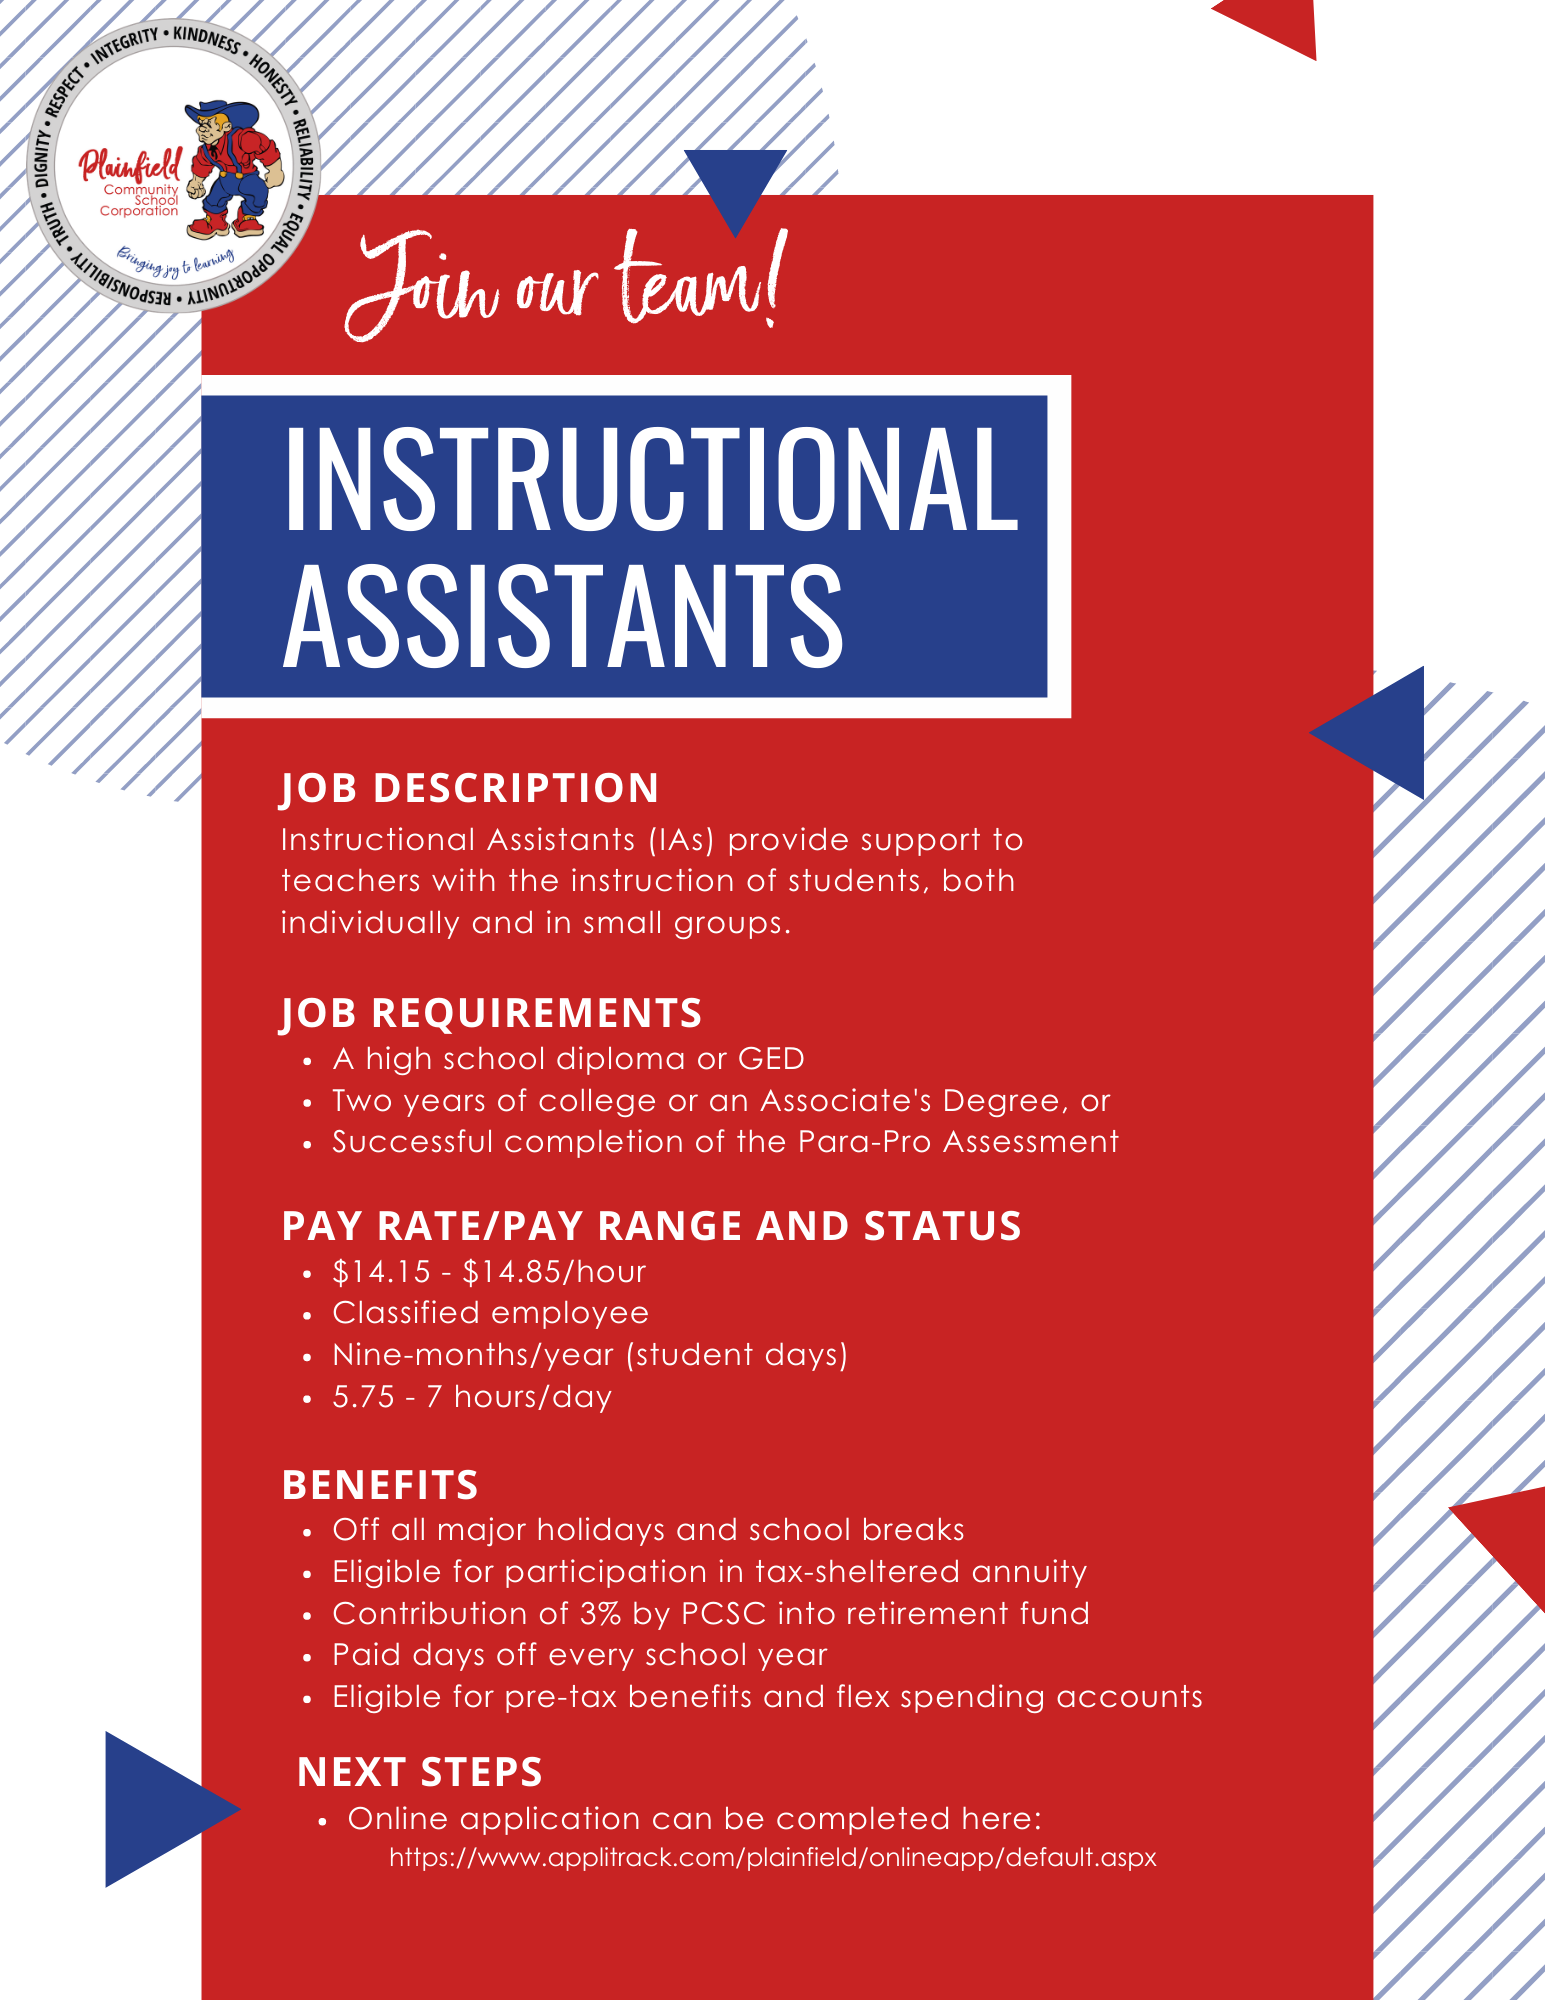 Details about being an Instructional Assistant in Plainfield Schools